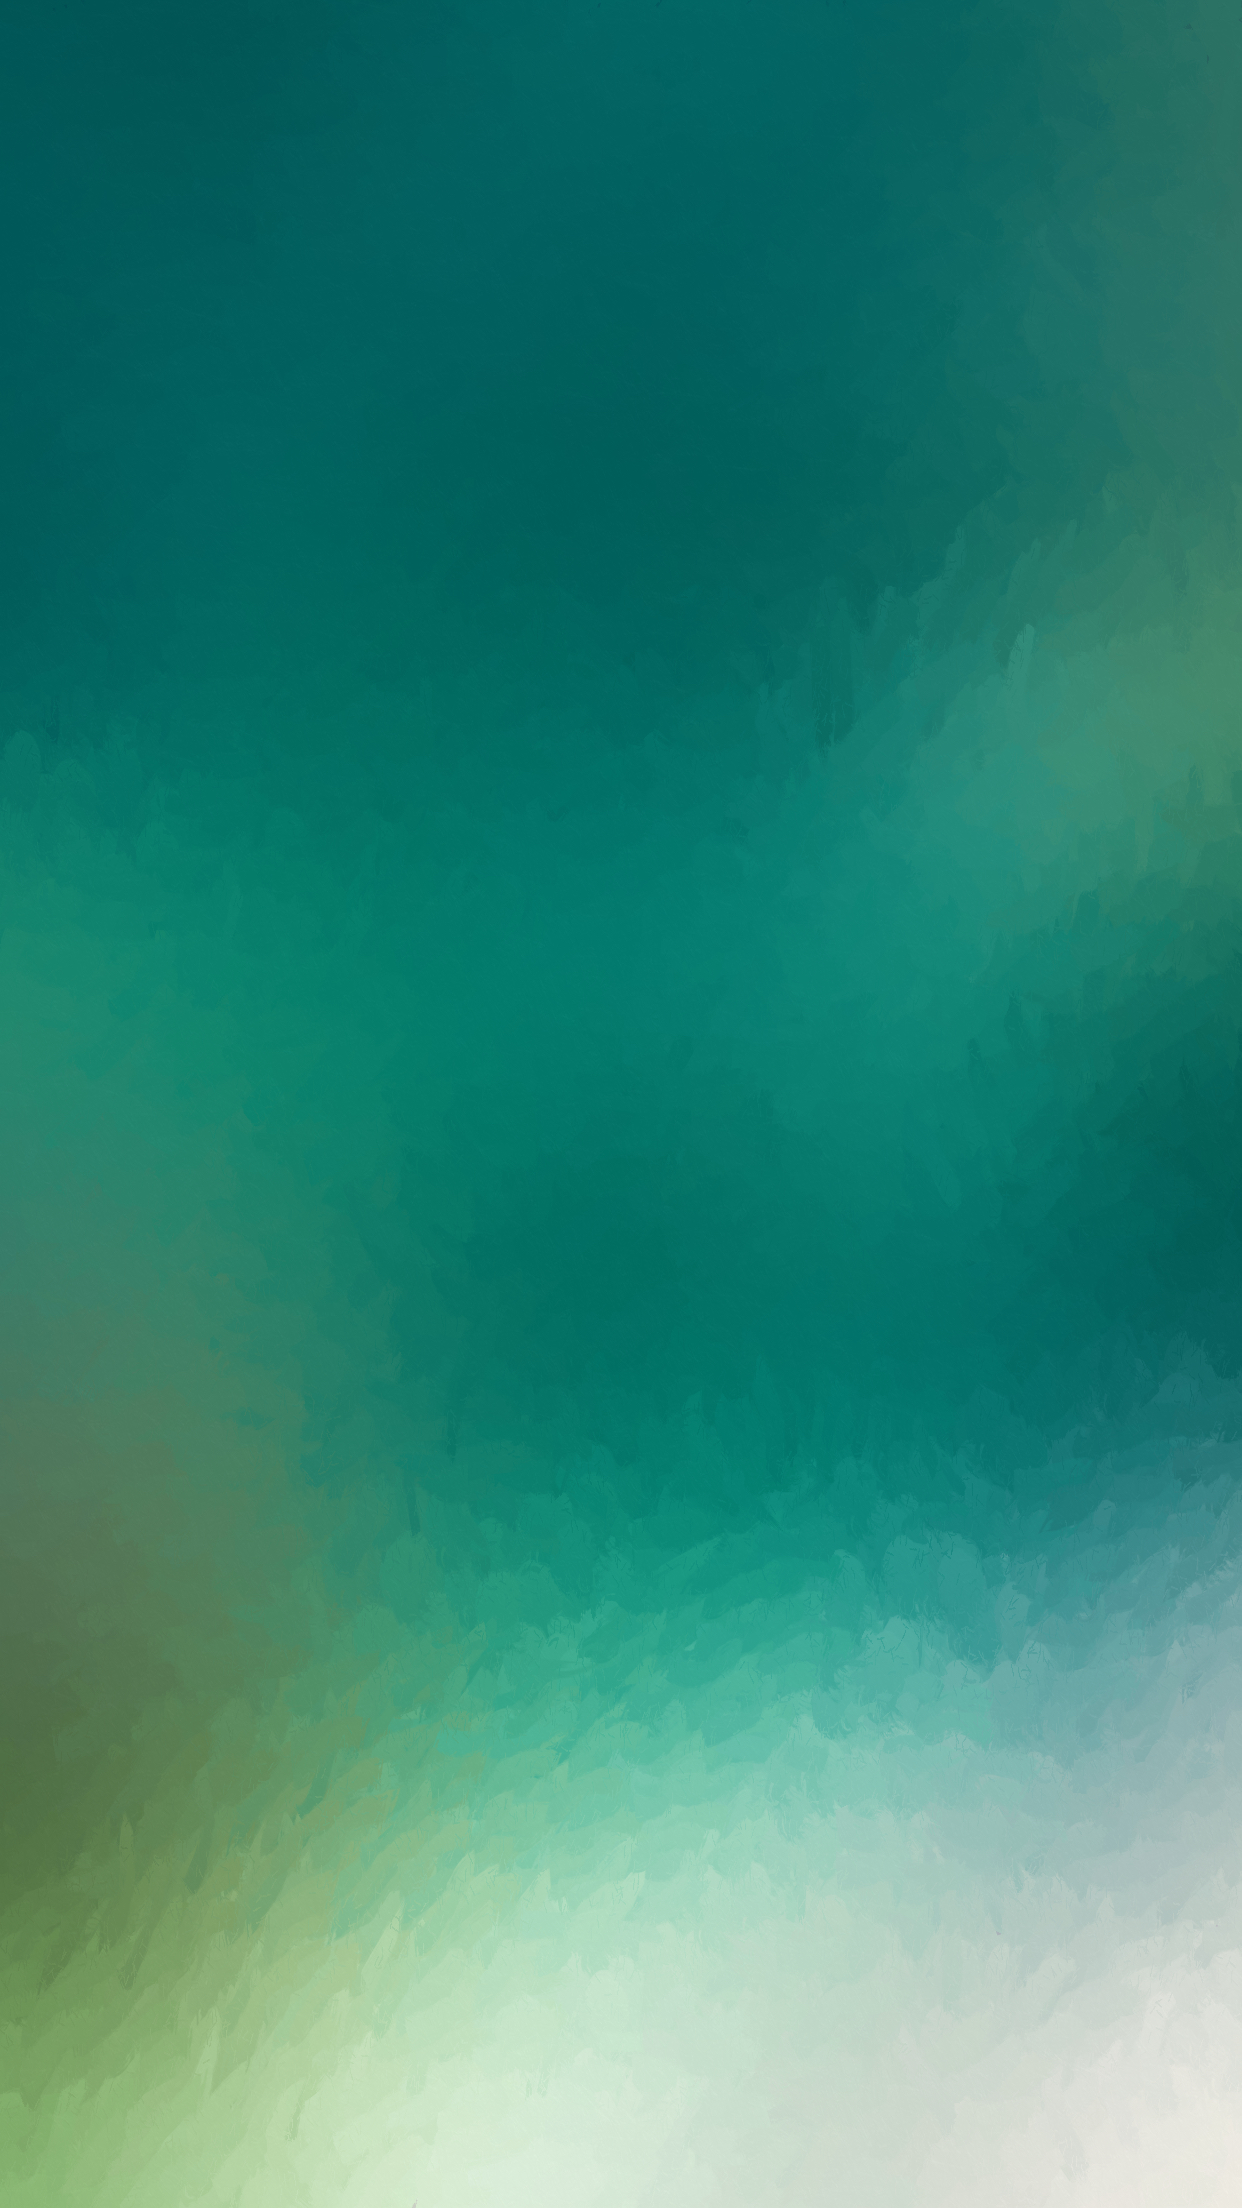 iOS 10 Wallpaper inspired kiwimanjaro splash. Download: gradient; textured ...